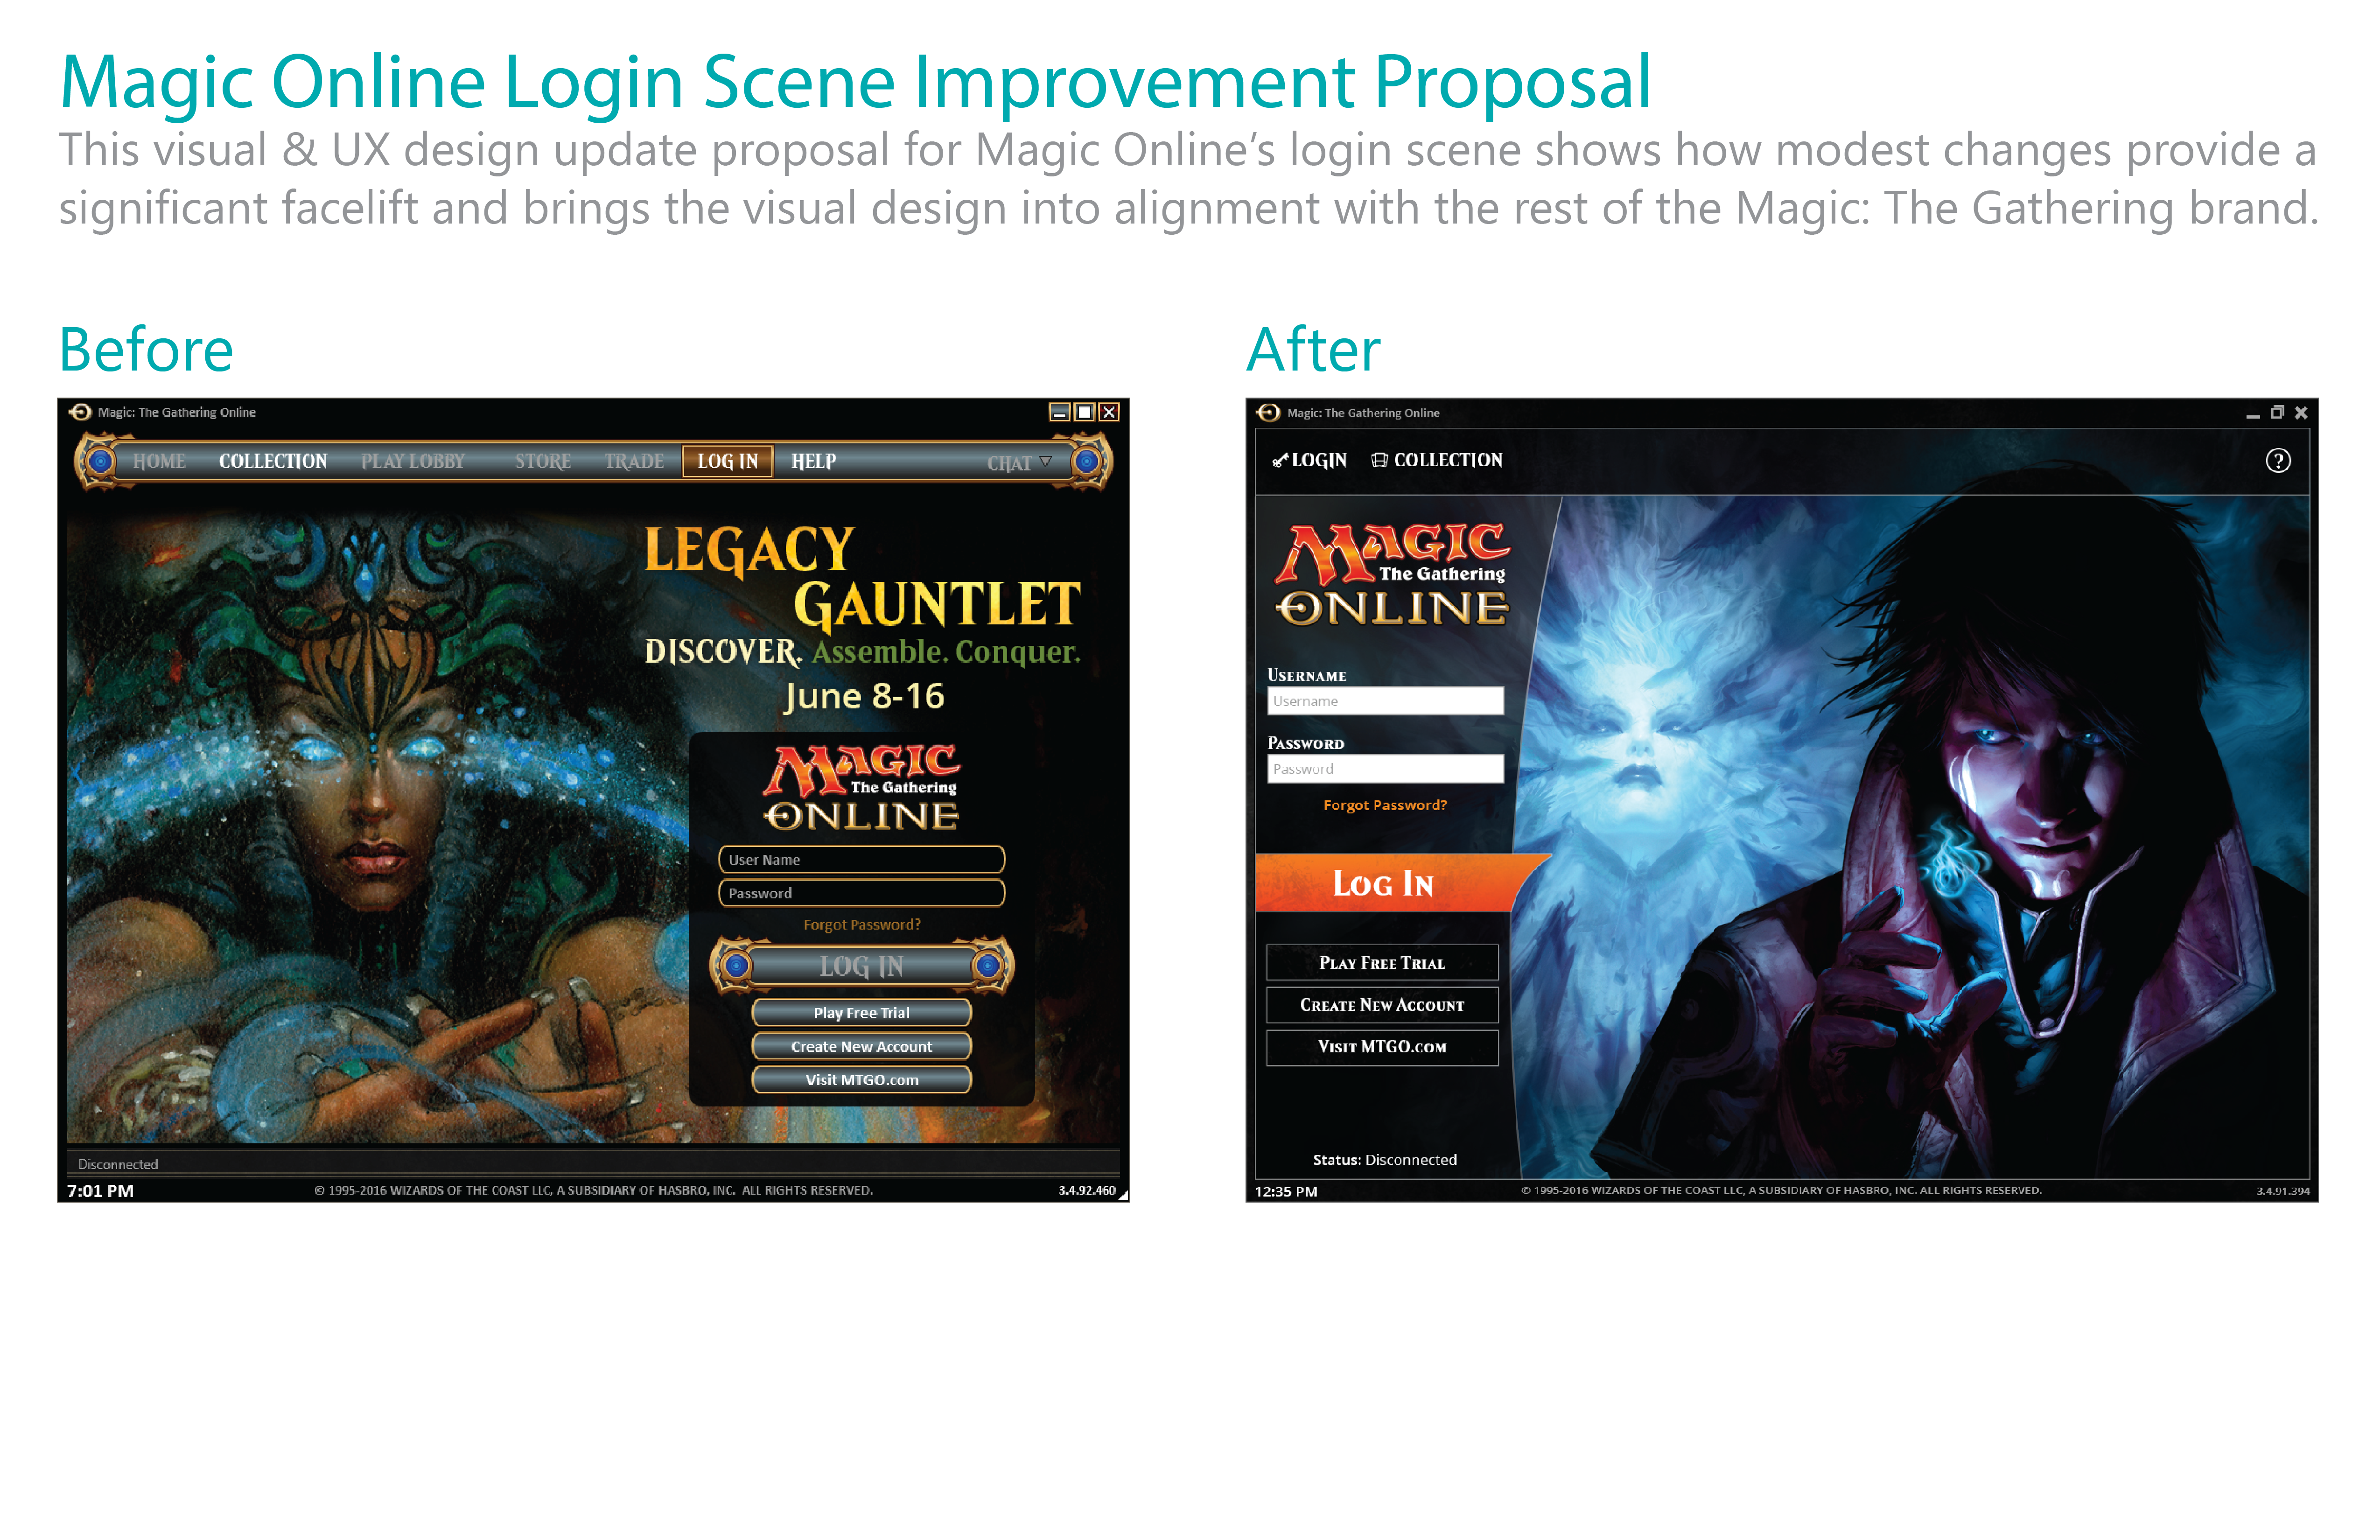 Magic Online Login Scene Improvement Proposal